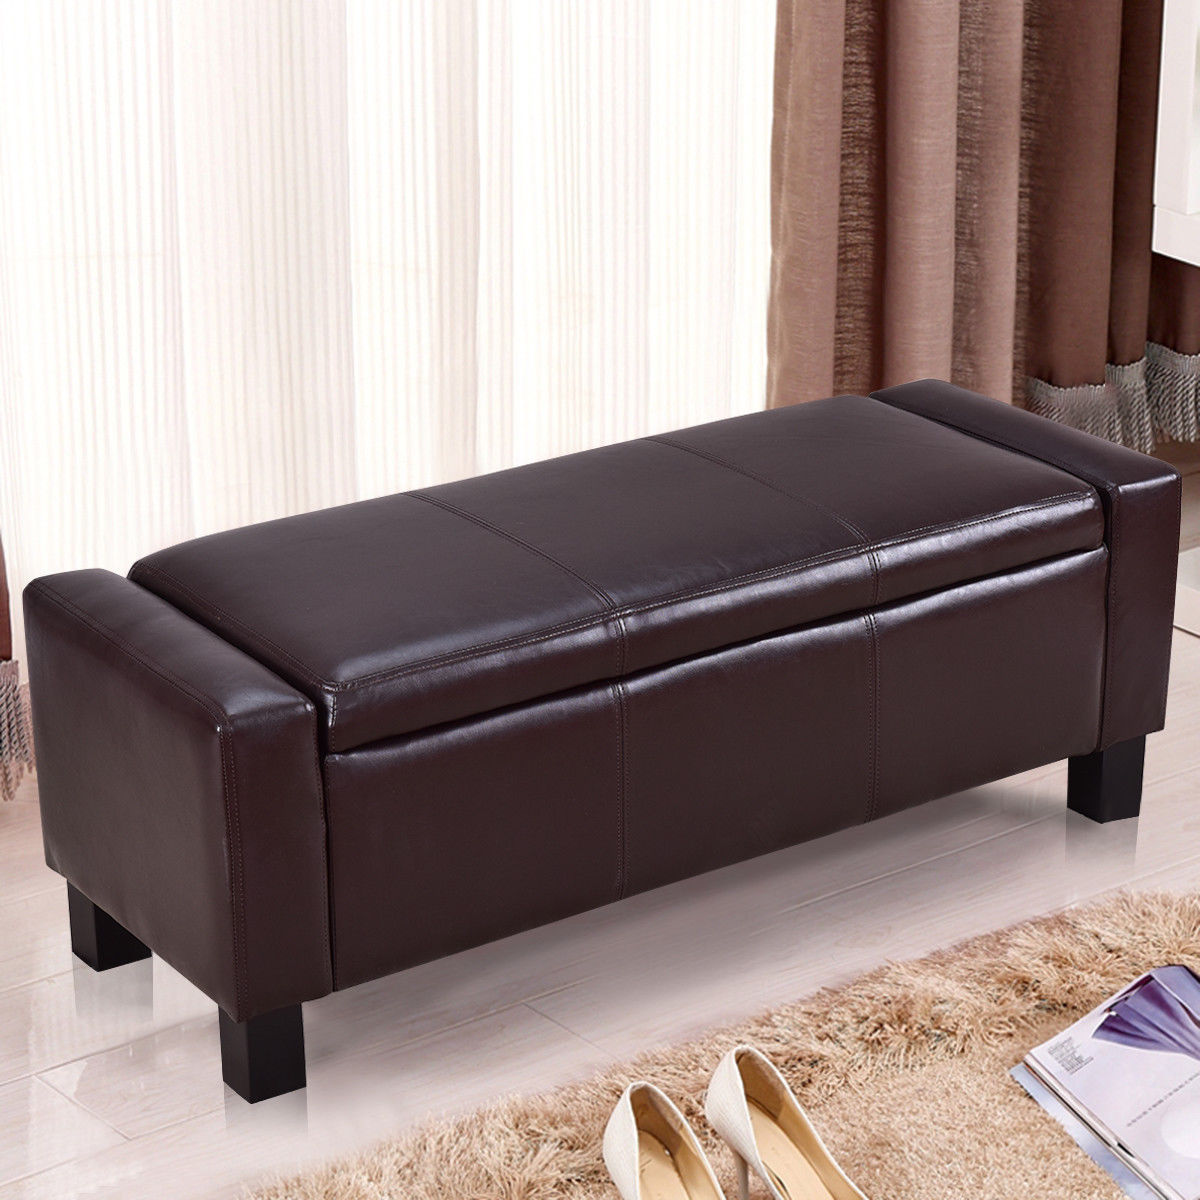 Gymax Brown PU Leather Storage Bench Ottoman Footstool Organizer Chair Home Furniture With Lid by Gymax